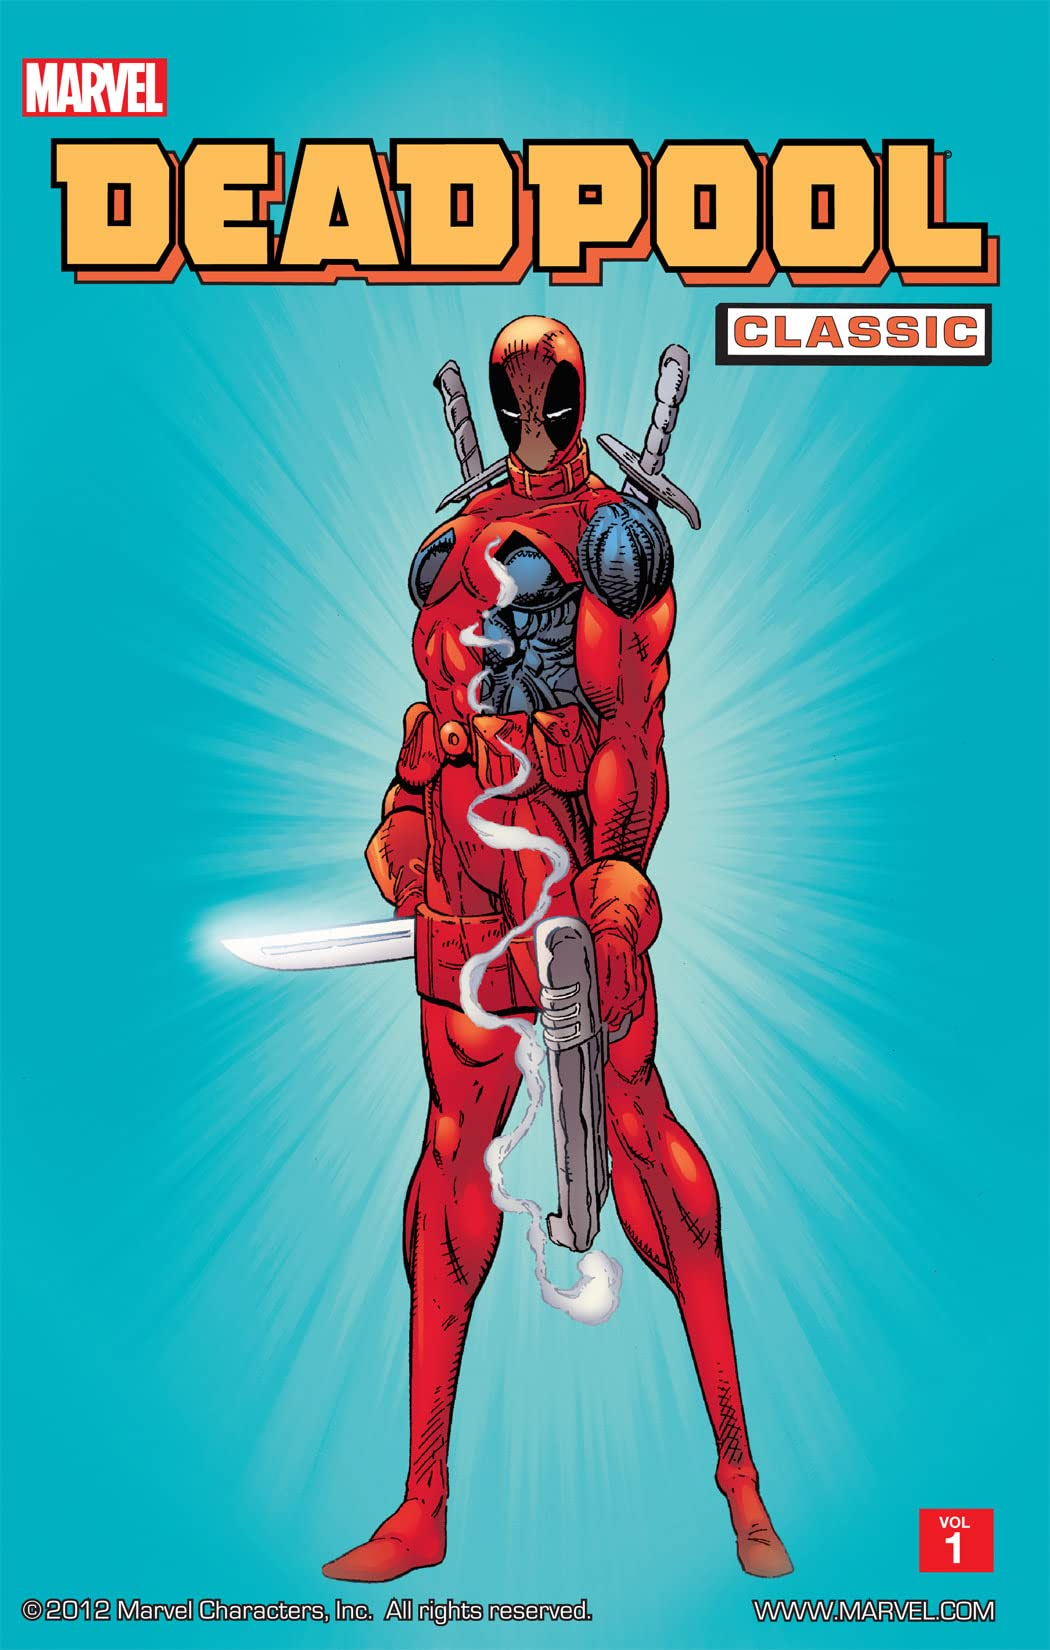 Deadpool Classic Vol. 1